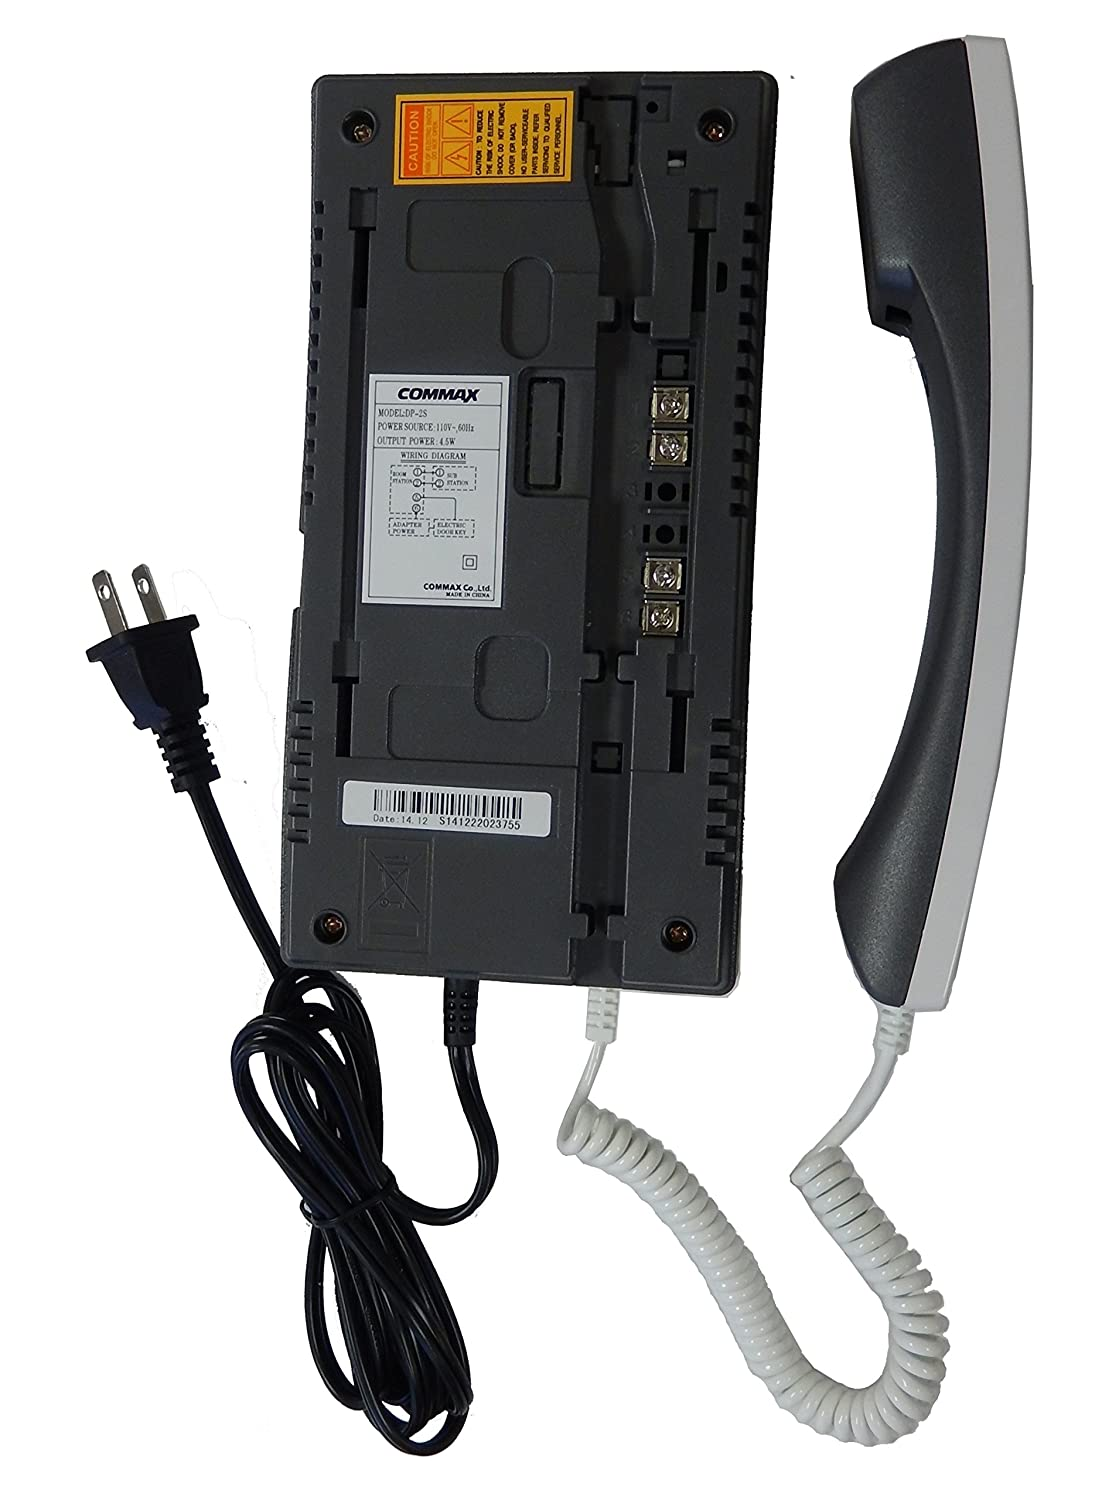 81iAYhN956L._SL1500_ amazon com commax audio door phone and door unit kit dp 2s dr 2k commax dp-201r wiring diagram at n-0.co